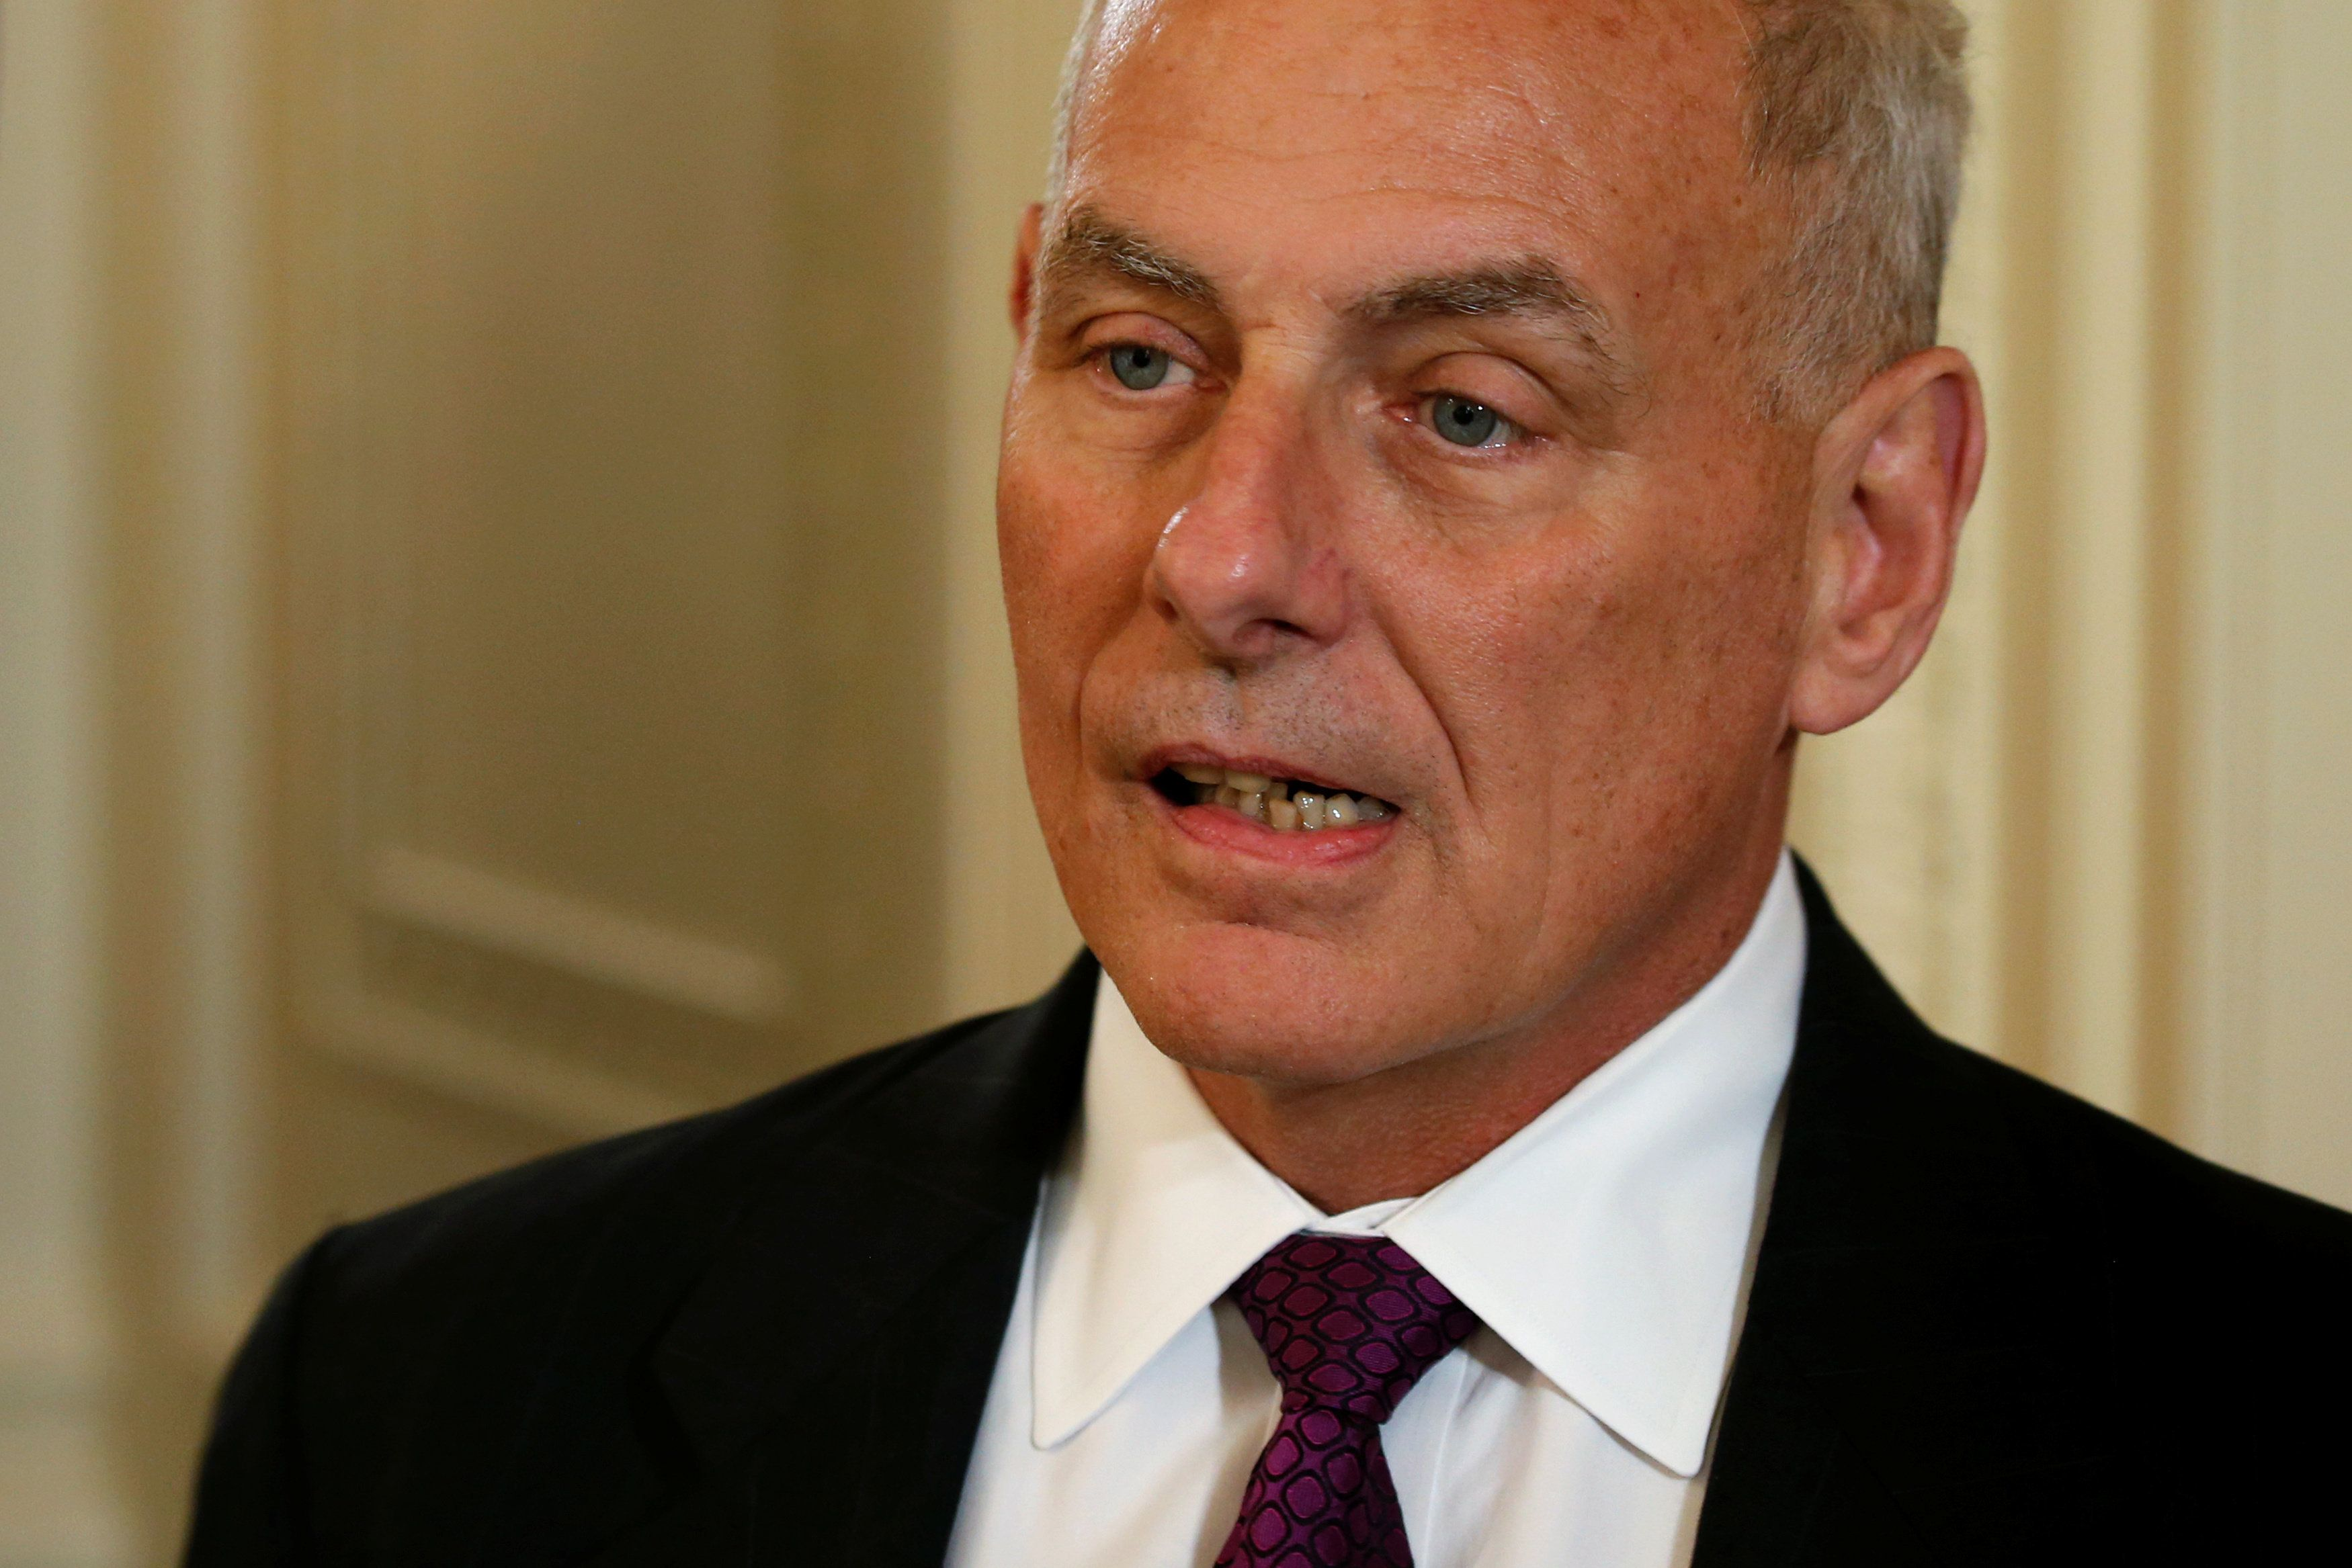 President Trump Confirms John Kelly Out as White House Chief of Staff